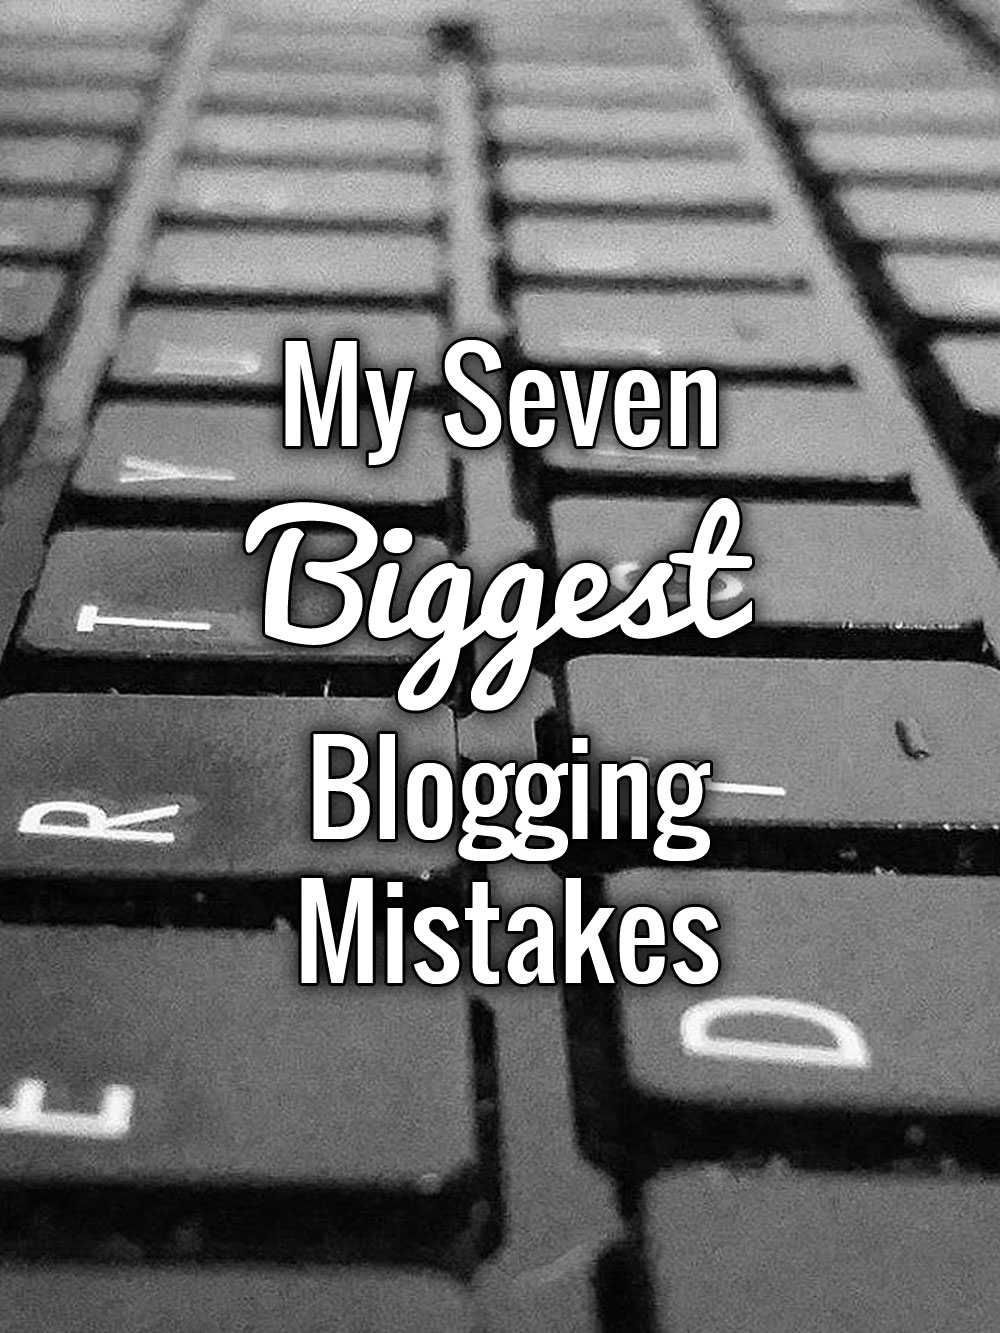 My Seven Biggest Blogging Mistakes!